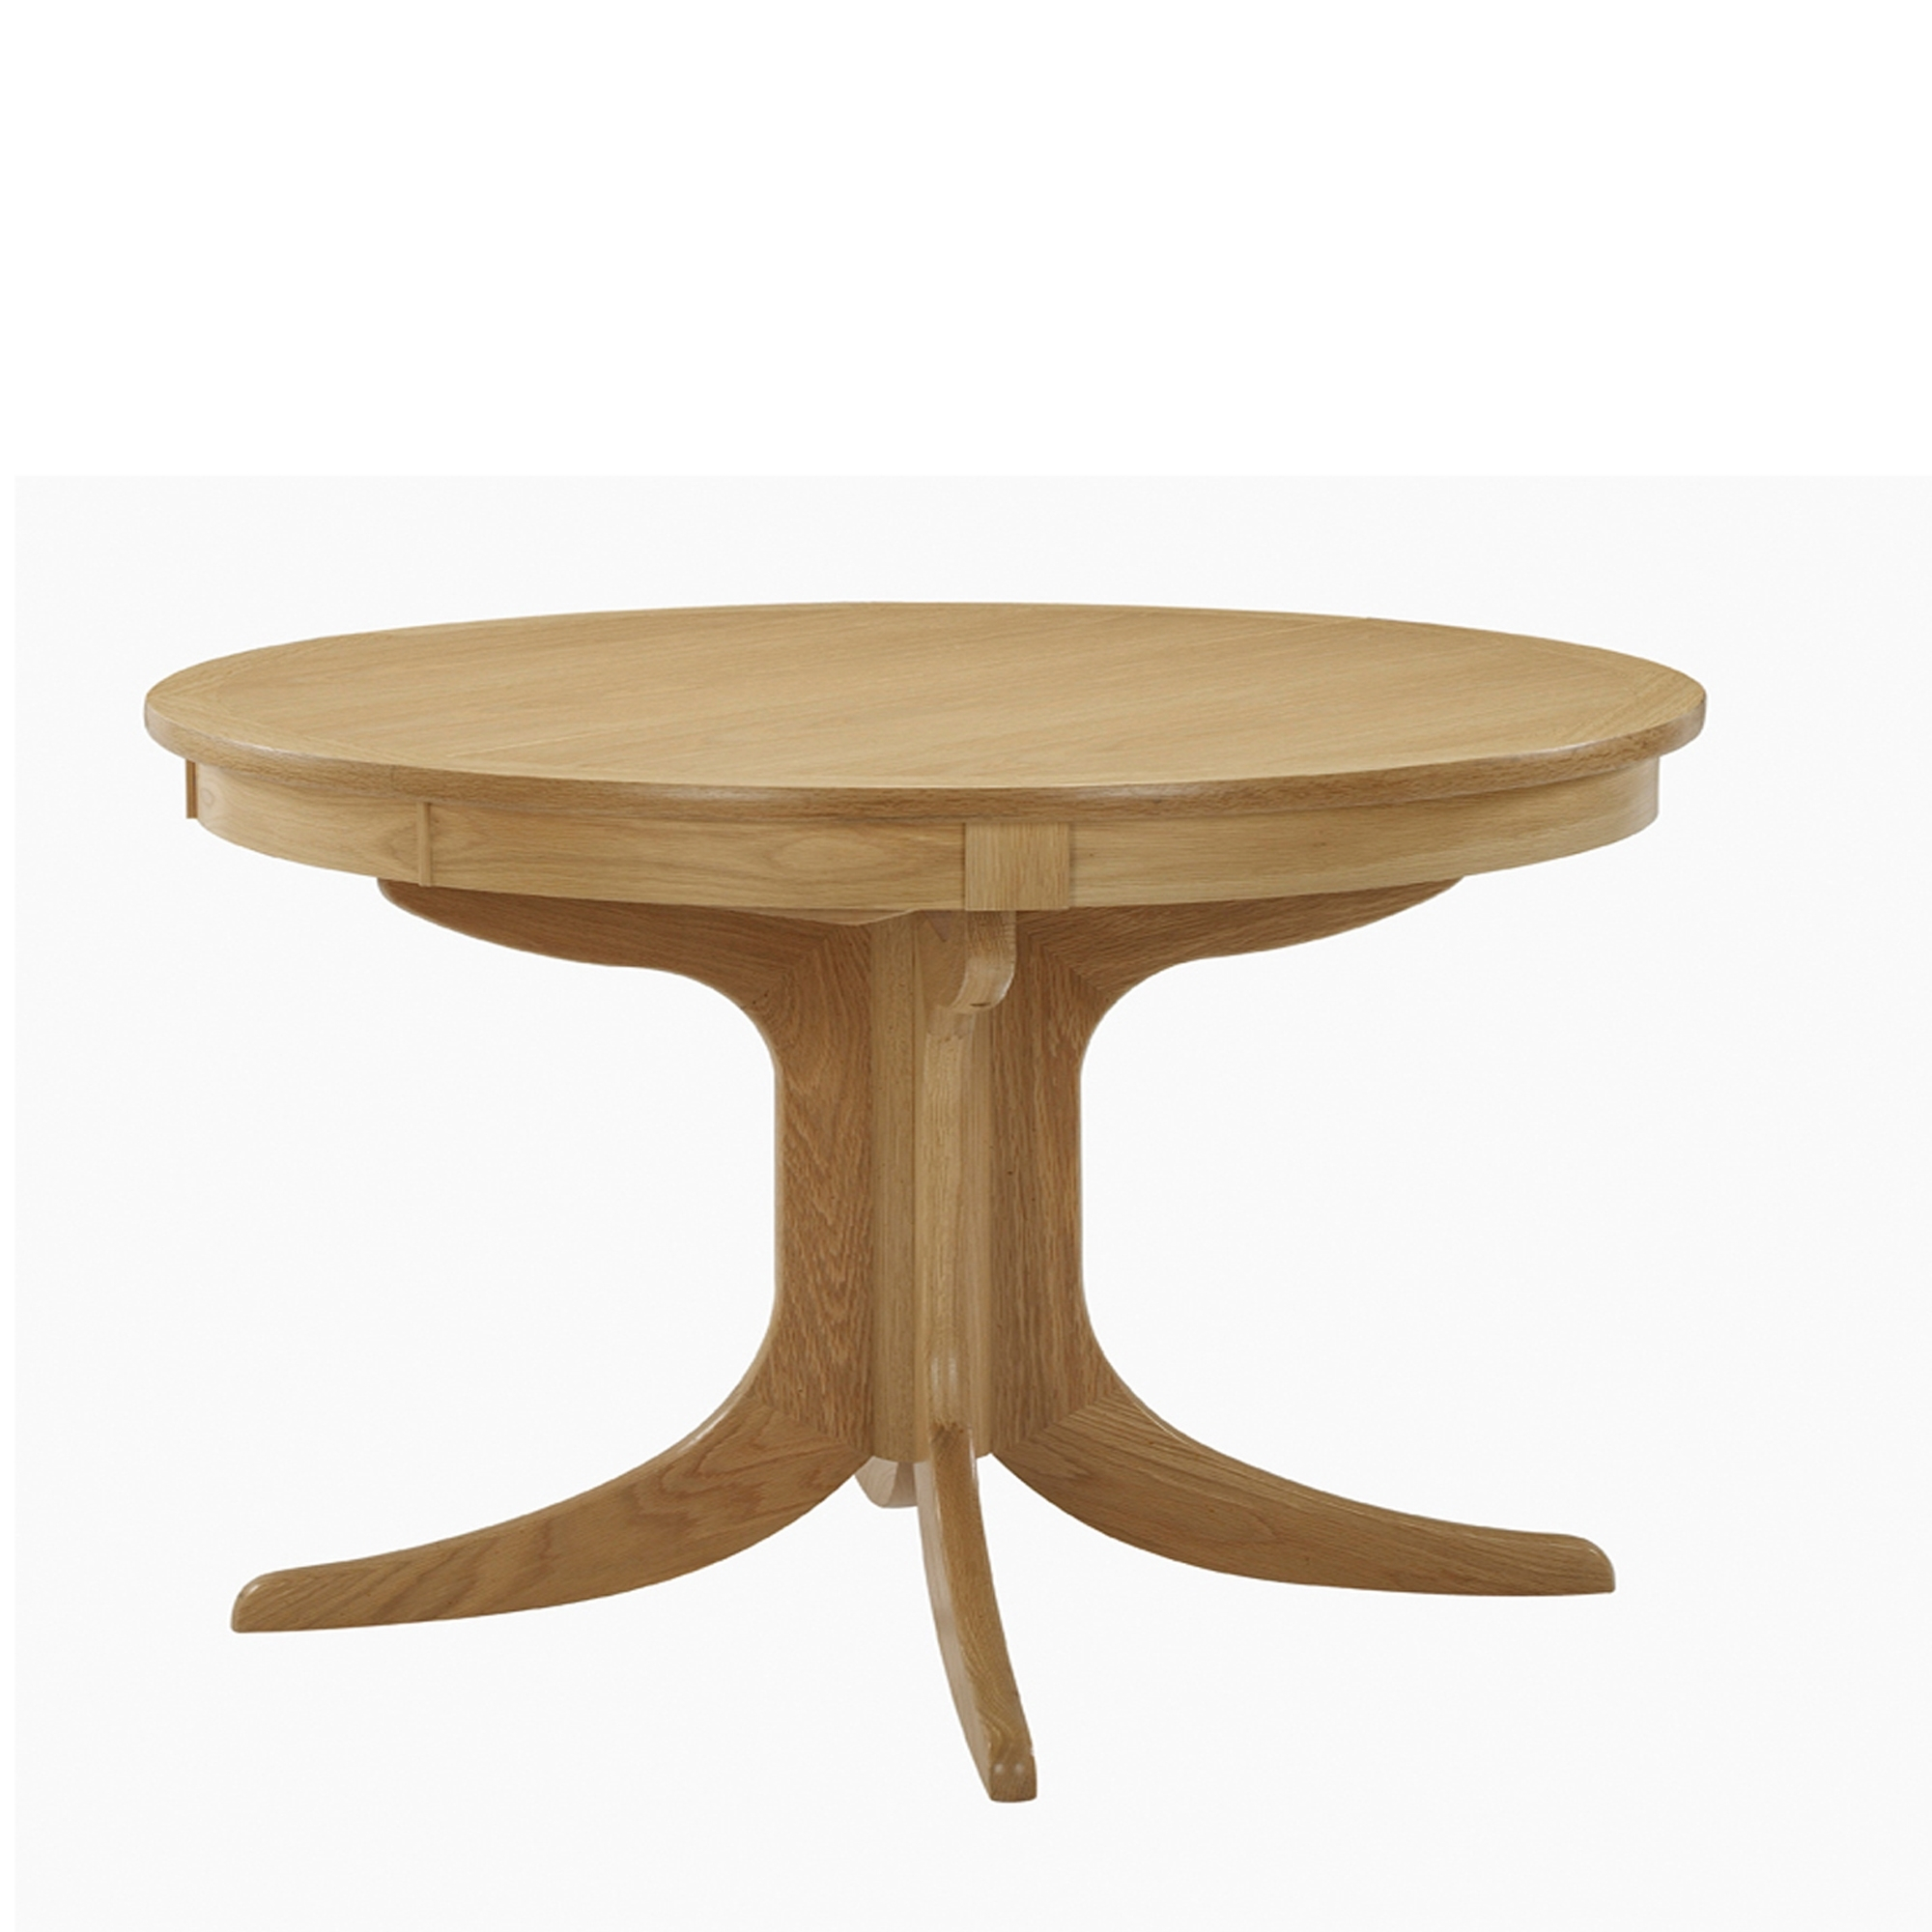 tables with dining oval room unique ideas contemporary lovely glass of table bamboo design pedestal best round